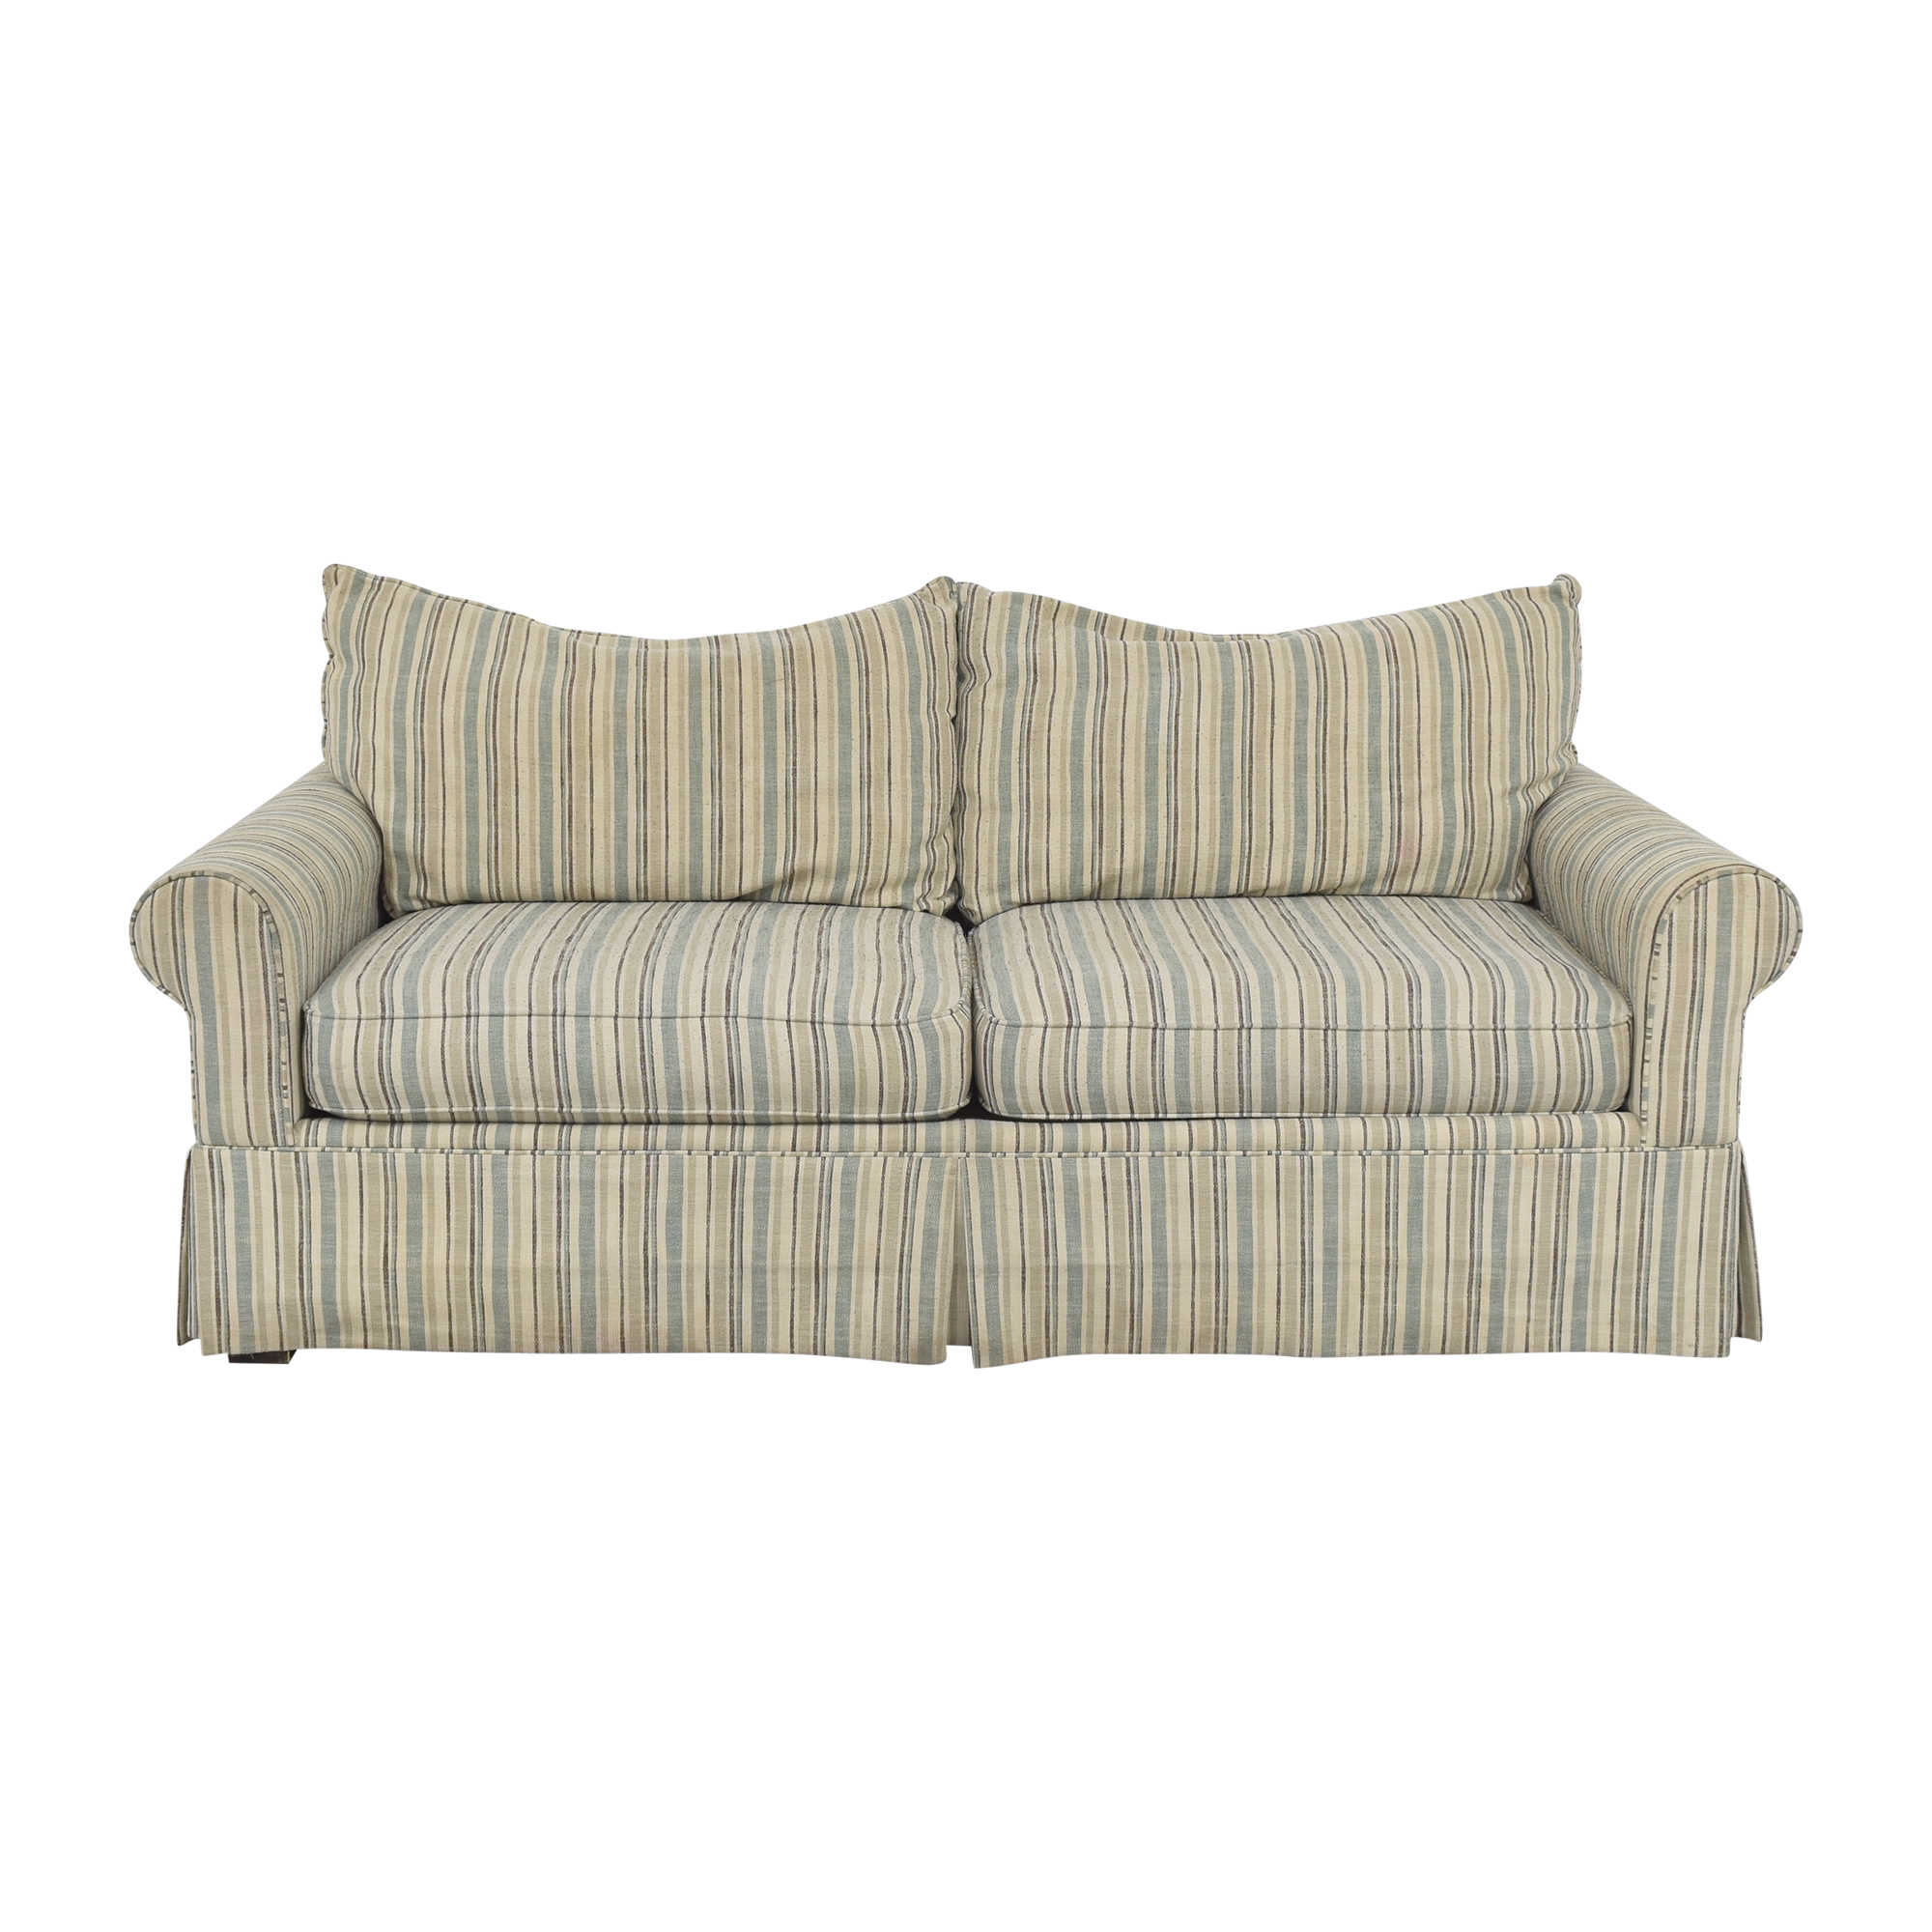 Raymour & Flanigan Striped Sofa / Classic Sofas